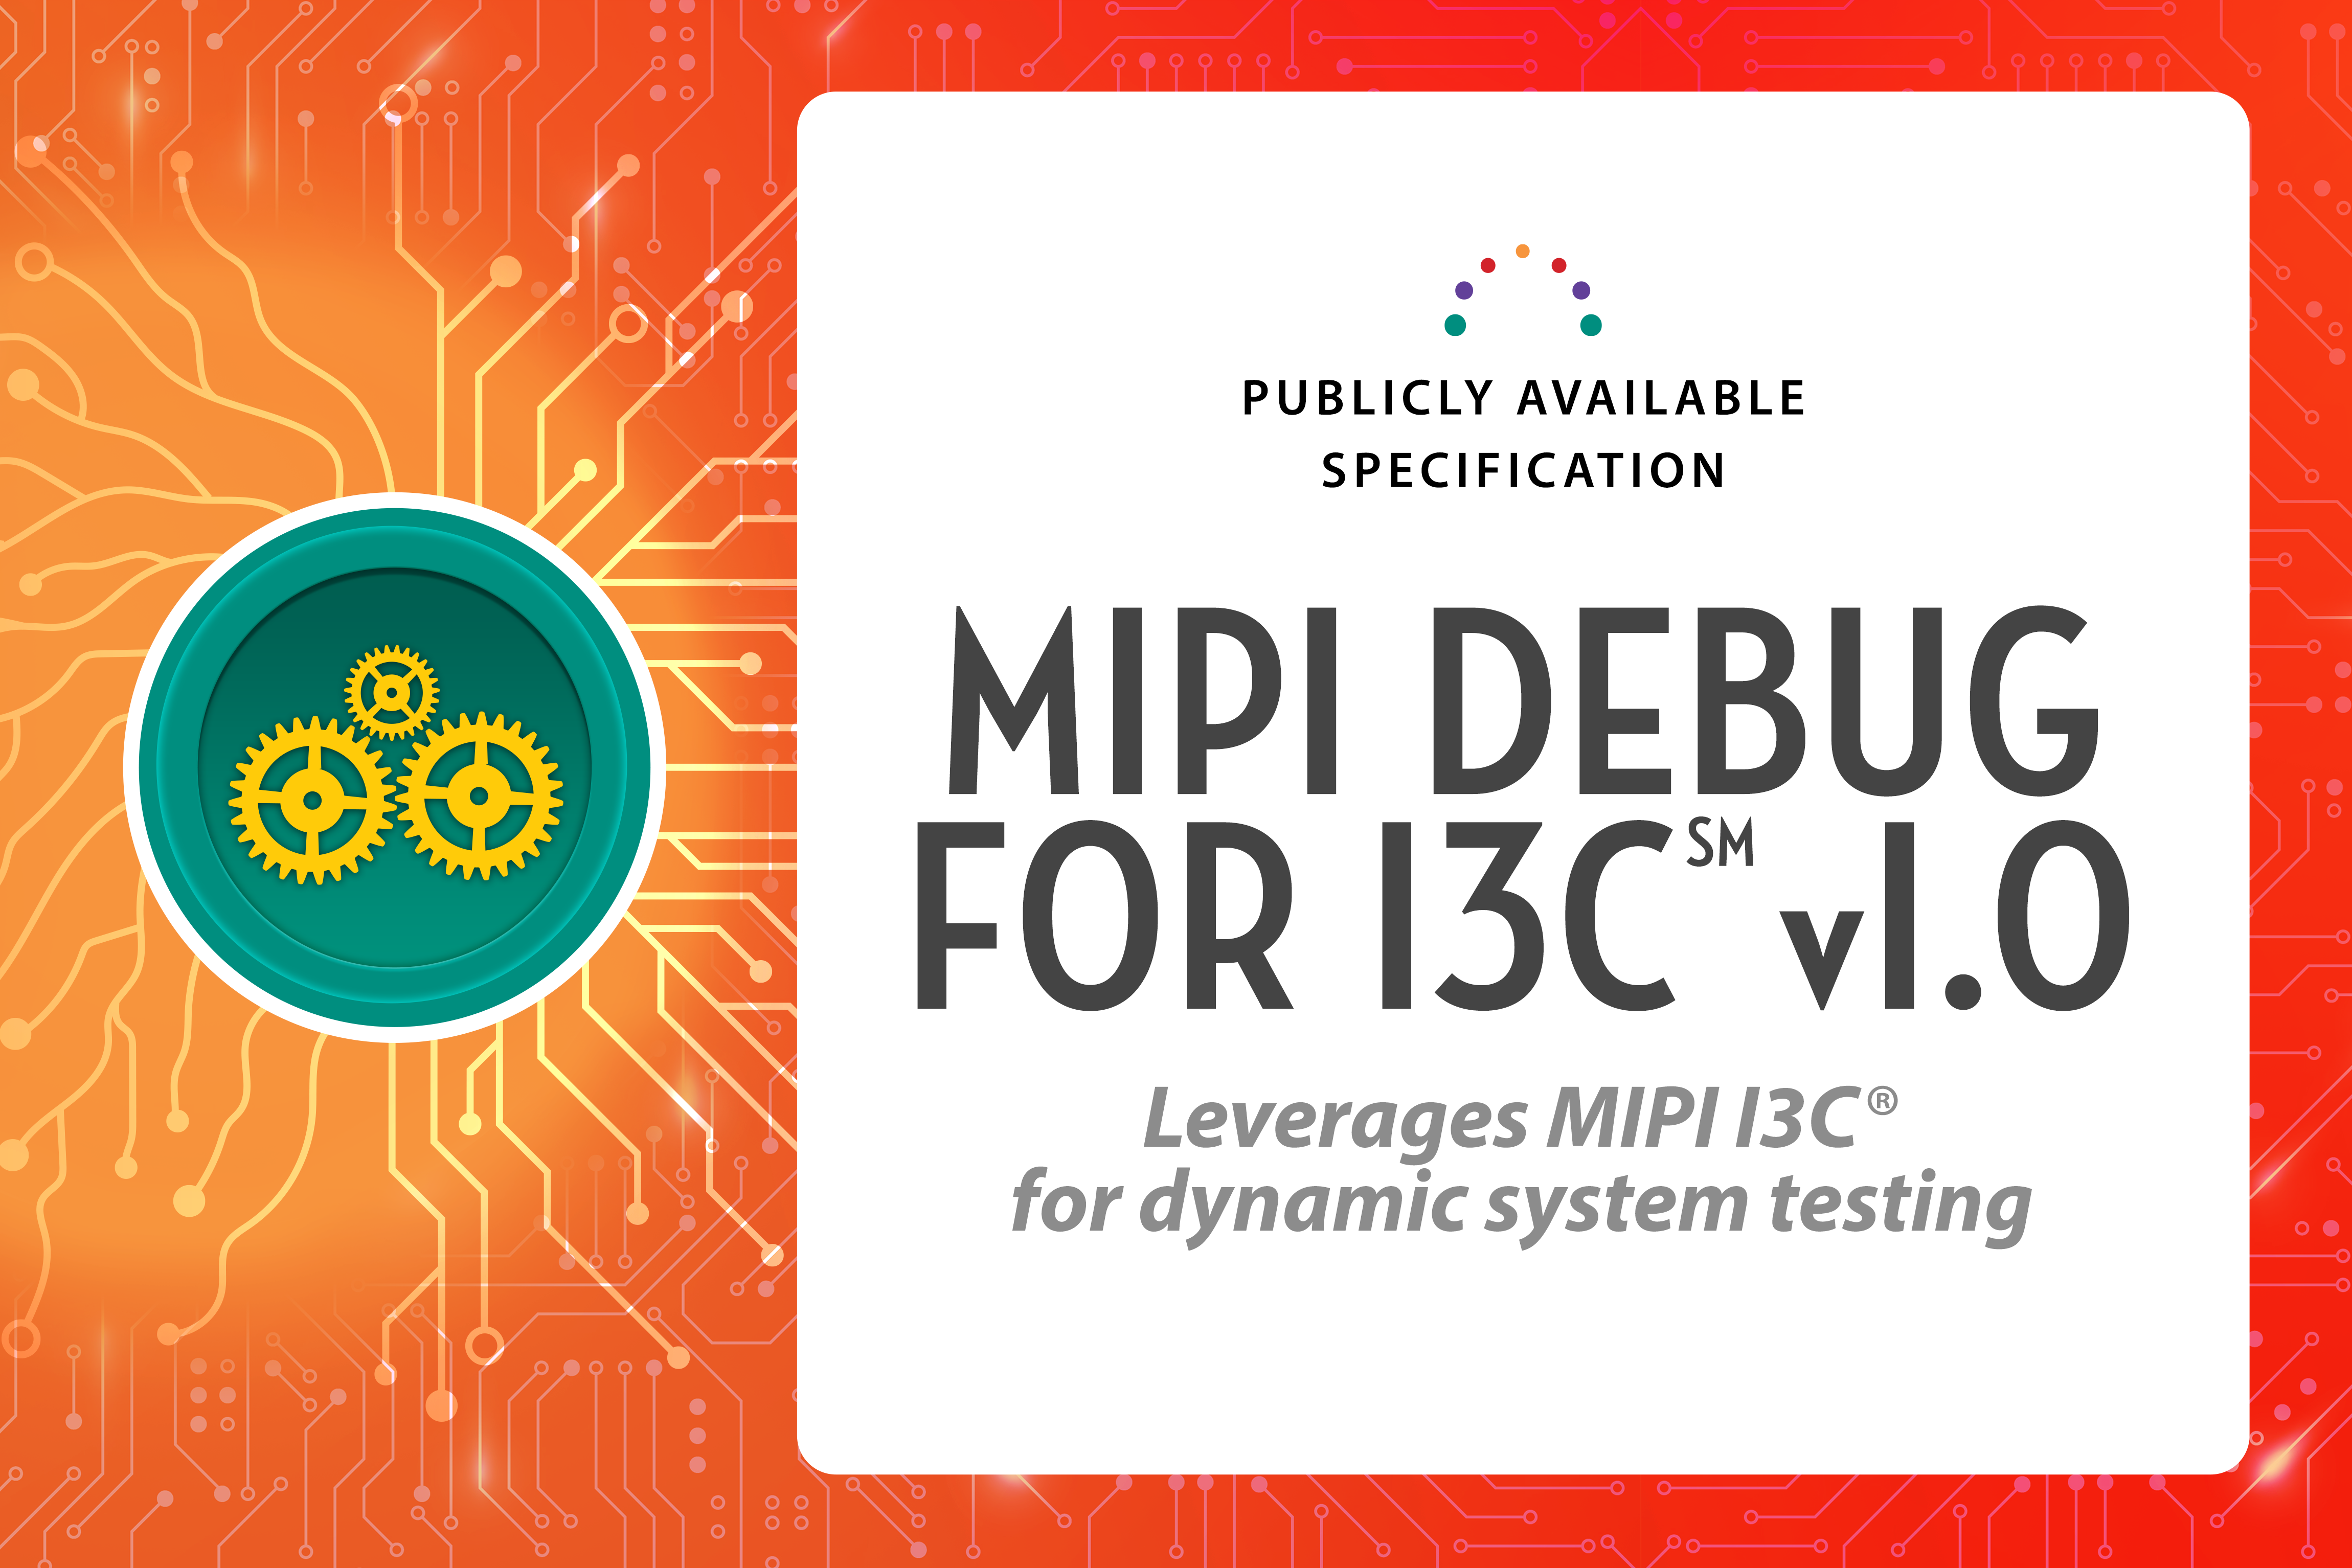 MIPI Debug for I3C v1.0 Now Available